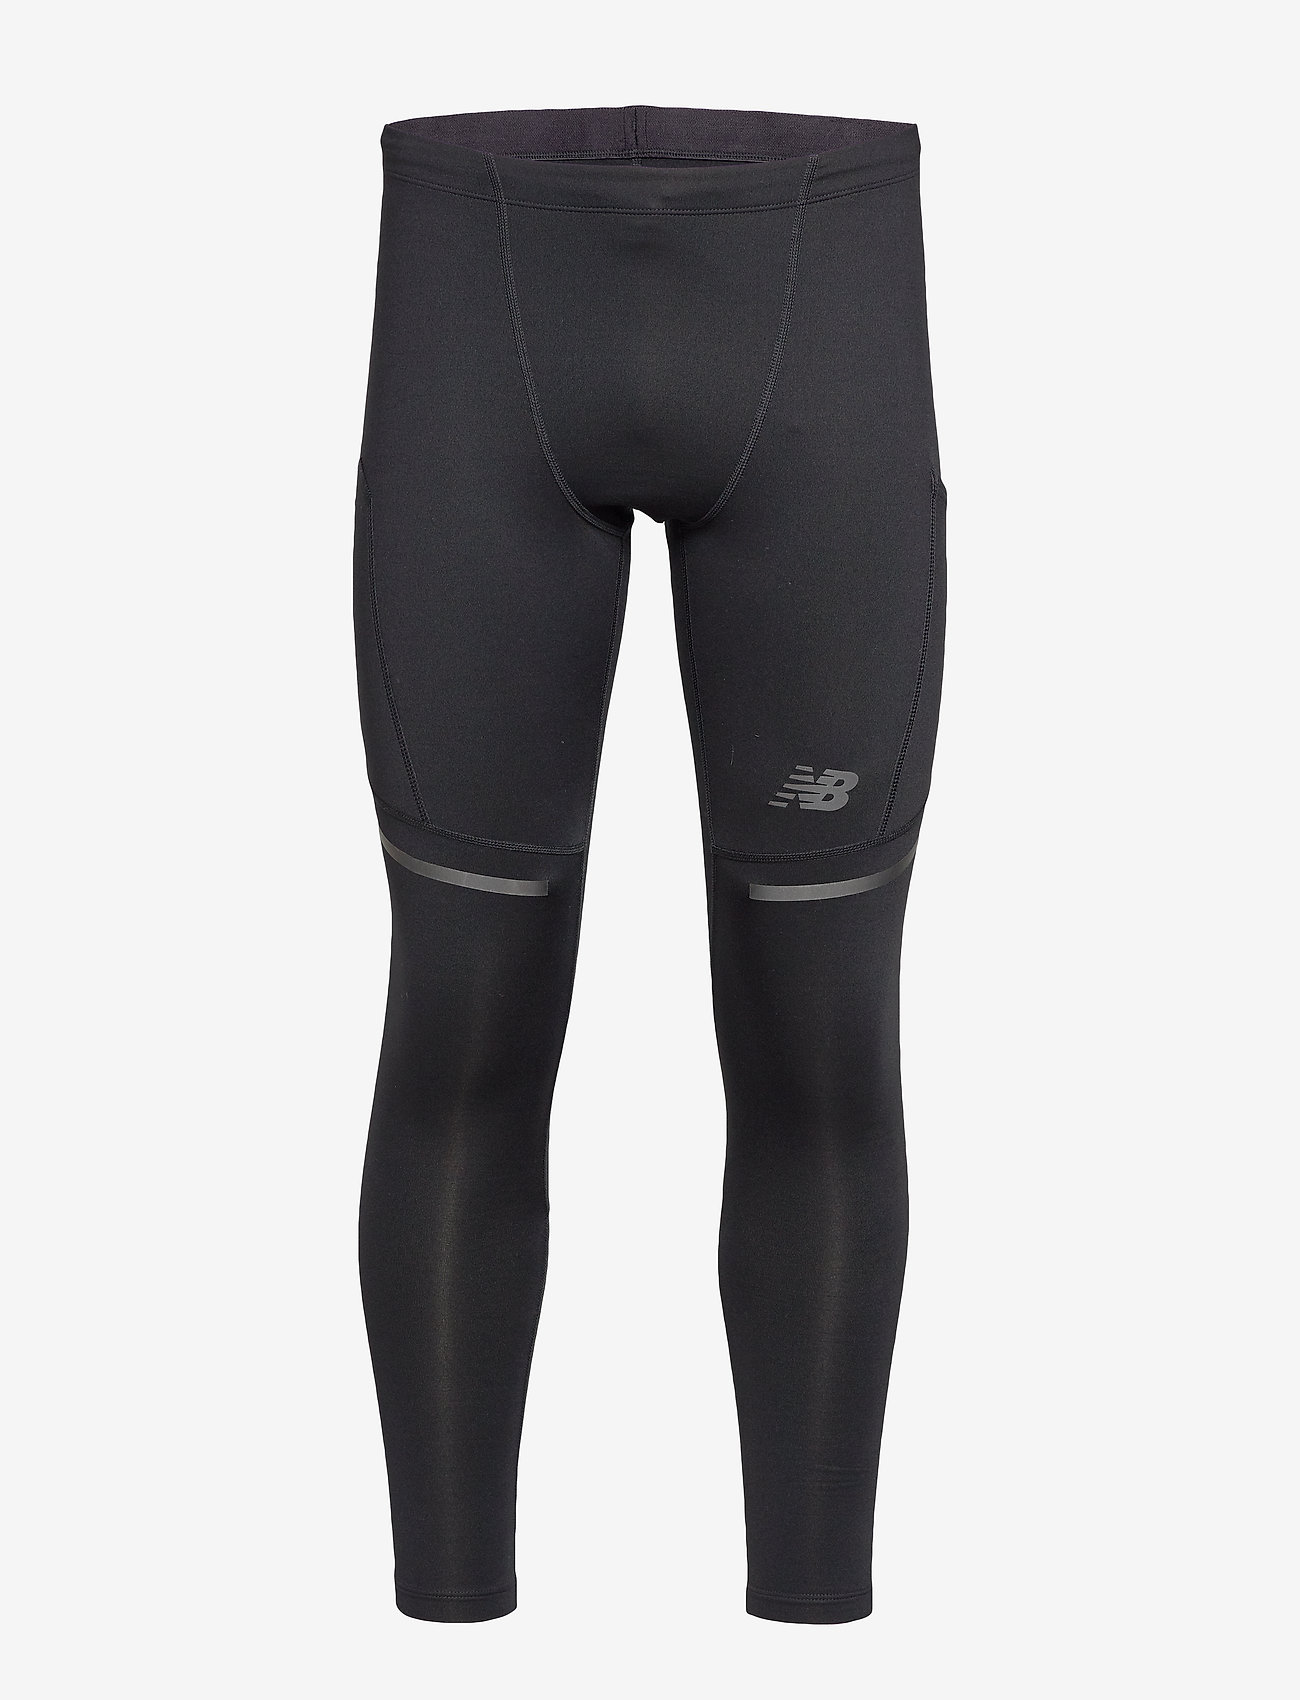 New Balance - IMPACT RUN HEAT TIGHT - running & training tights - black - 0